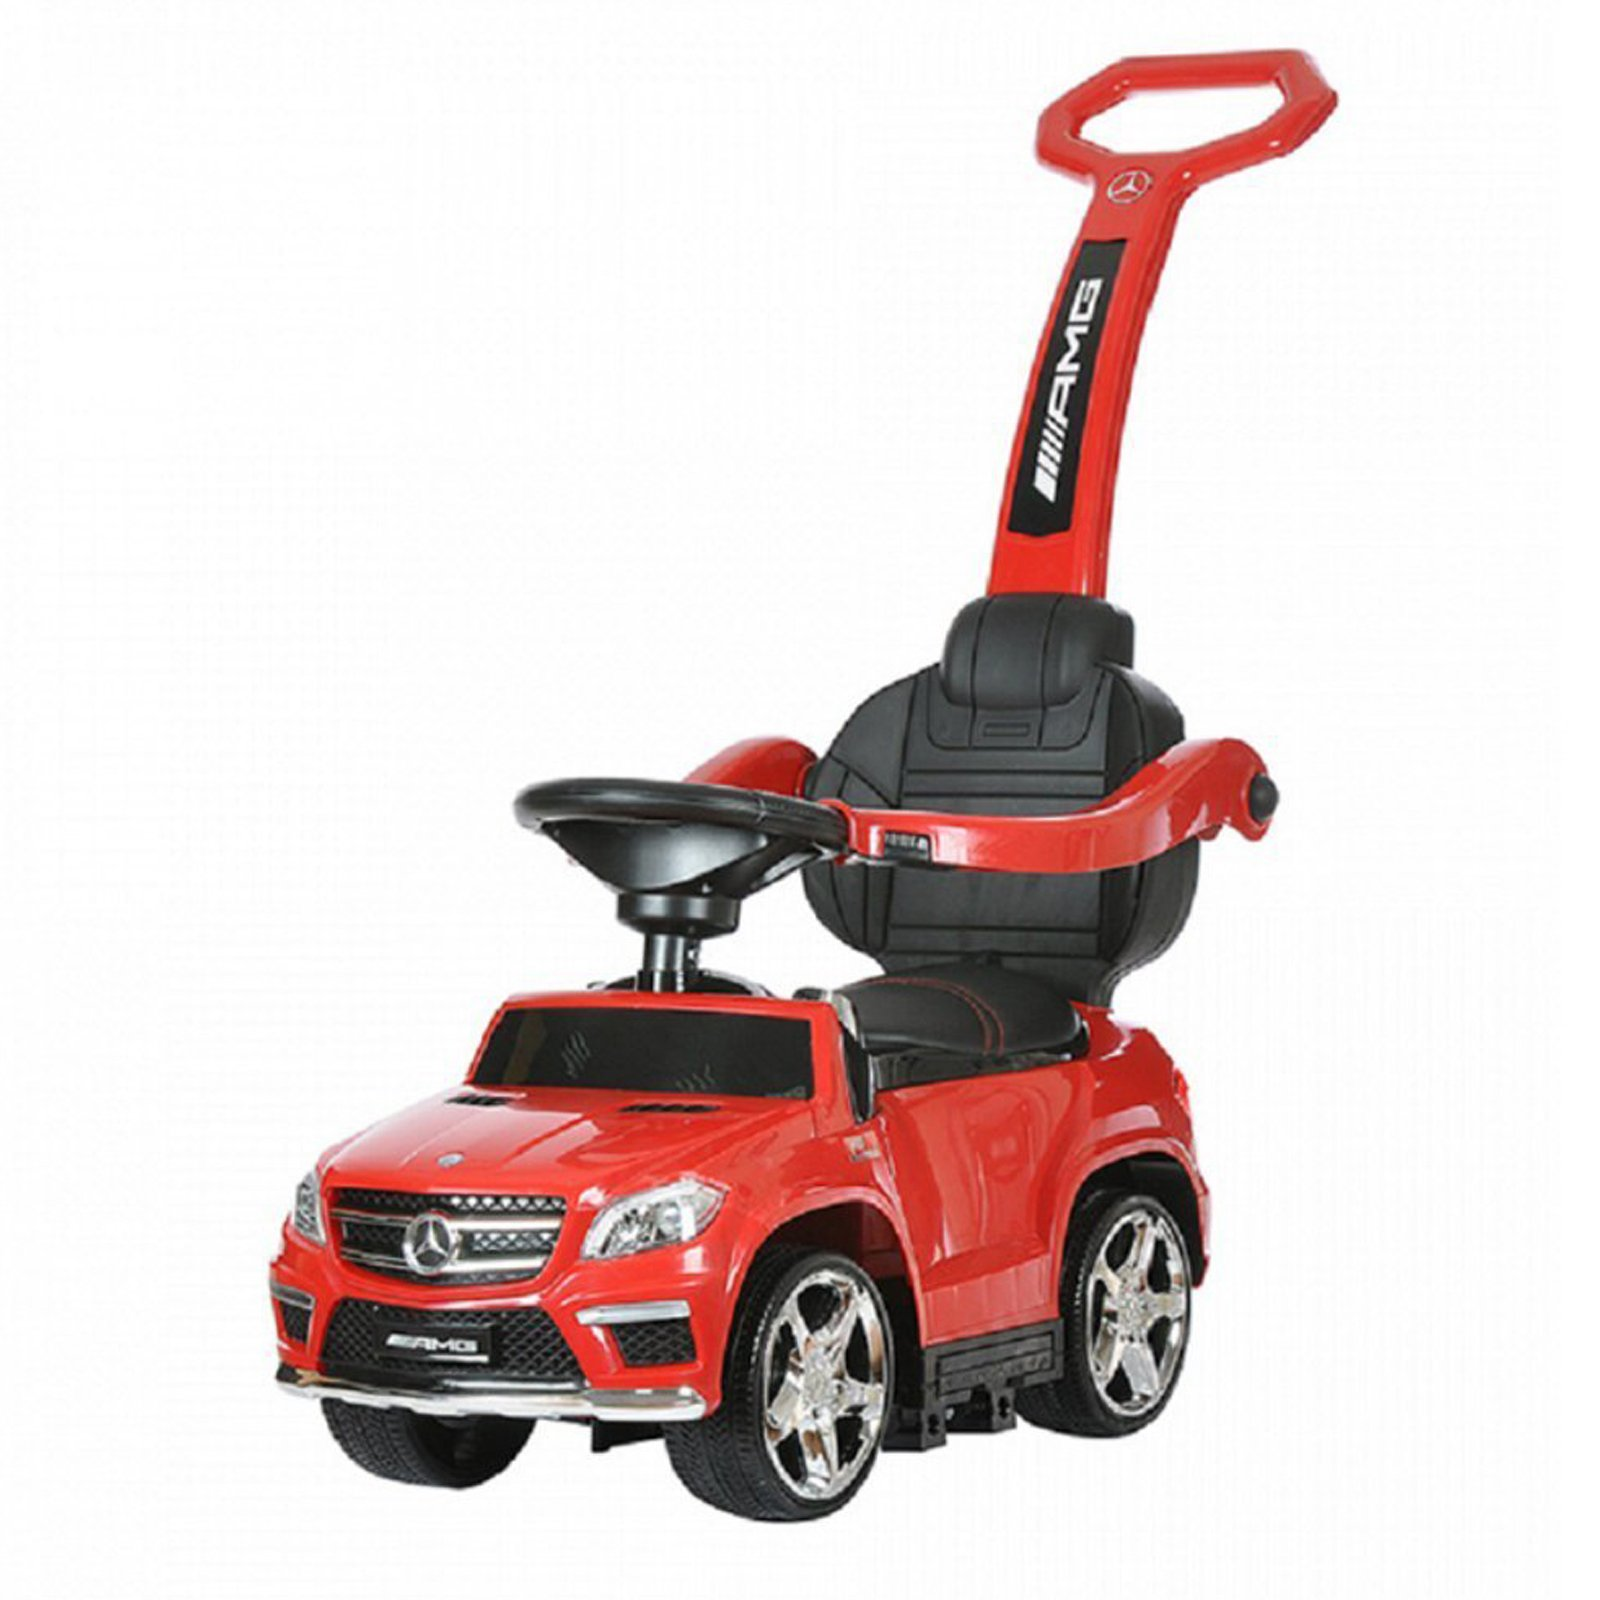 Click here to buy Best Ride On Cars 4-in-1 Mercedes Car Riding Push Toy by Best Ride On Cars.